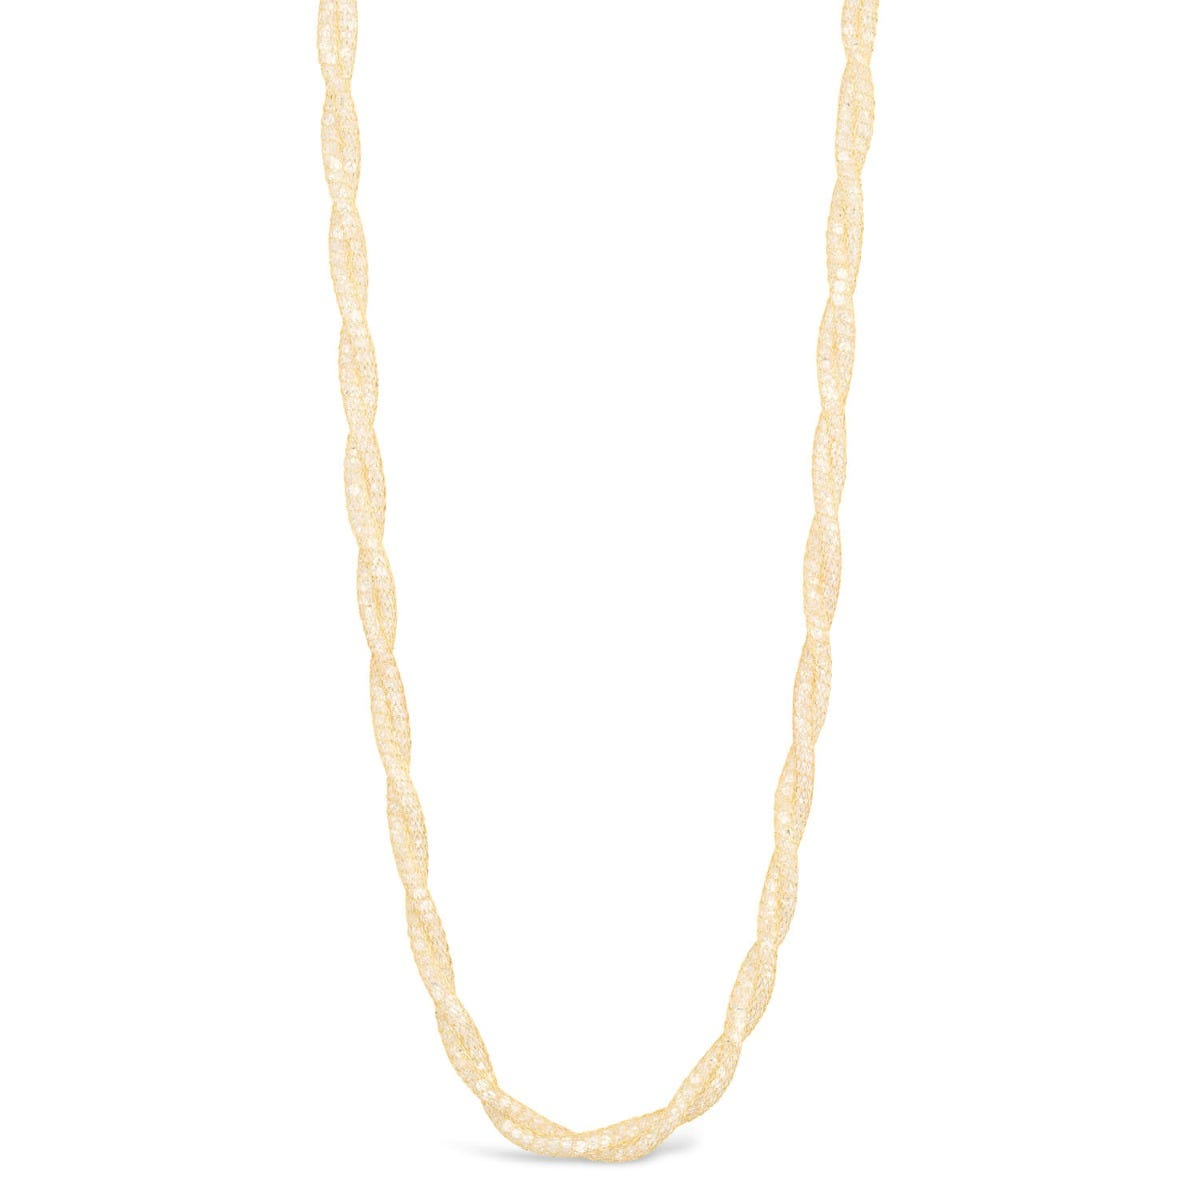 9ct Yellow Gold Cubic Zirconia Calza Braided Necklet